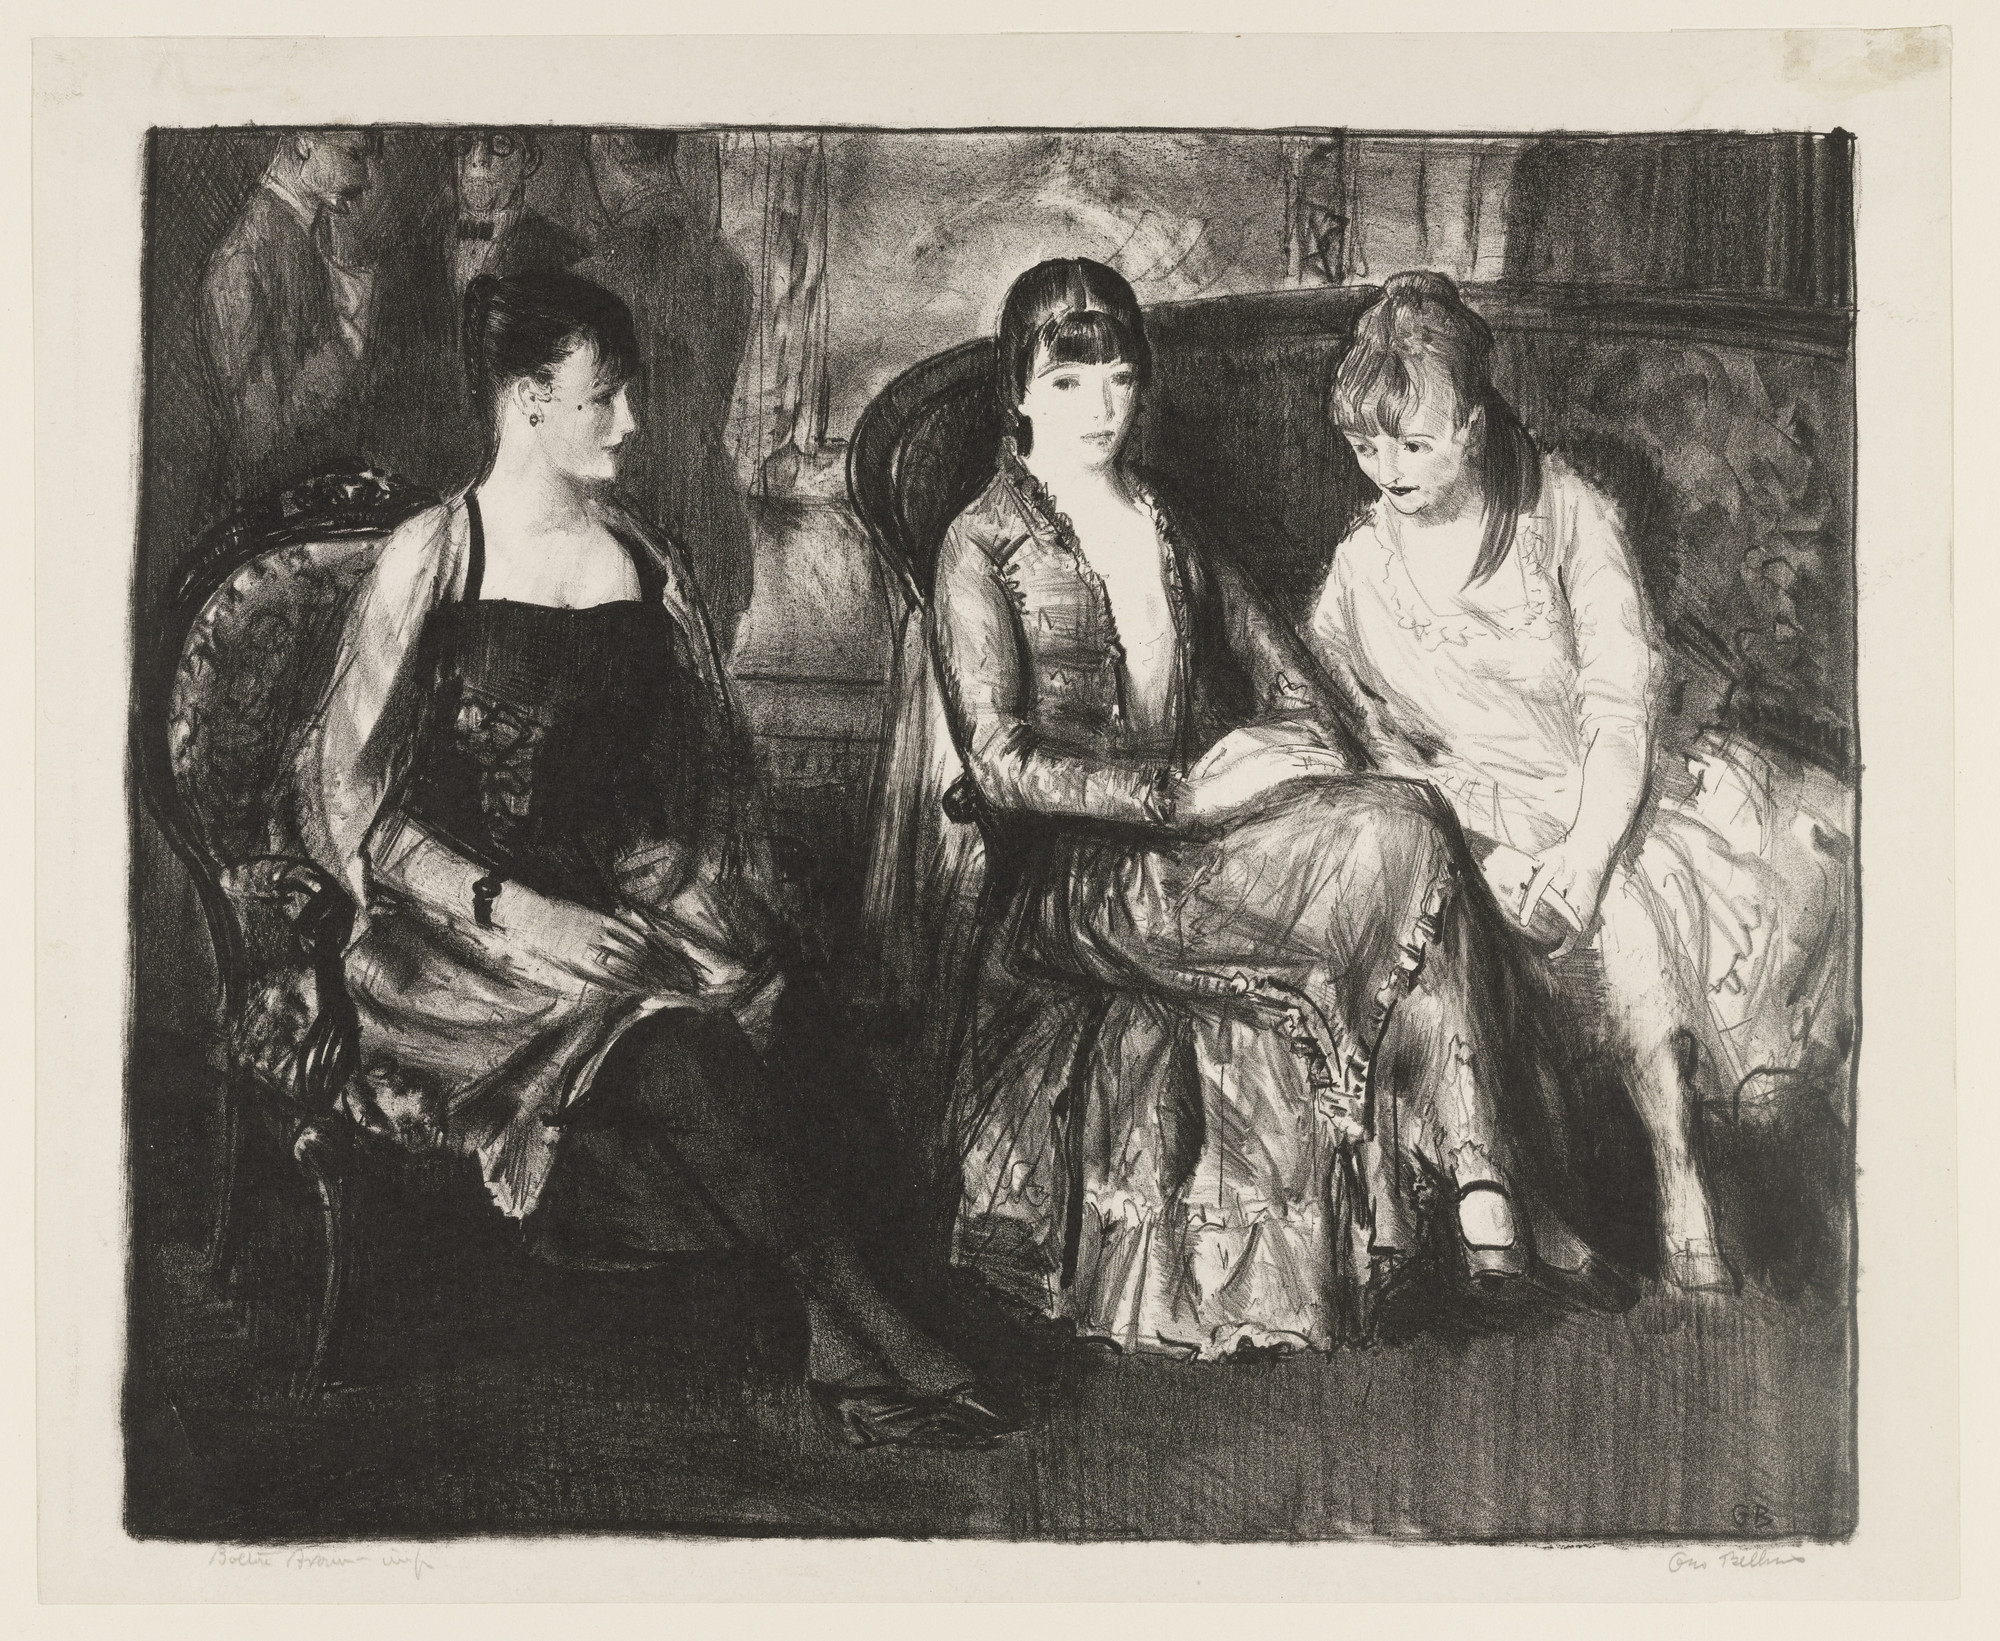 George Bellows. Marjorie, Emma, and Elsie, second stone. 1921